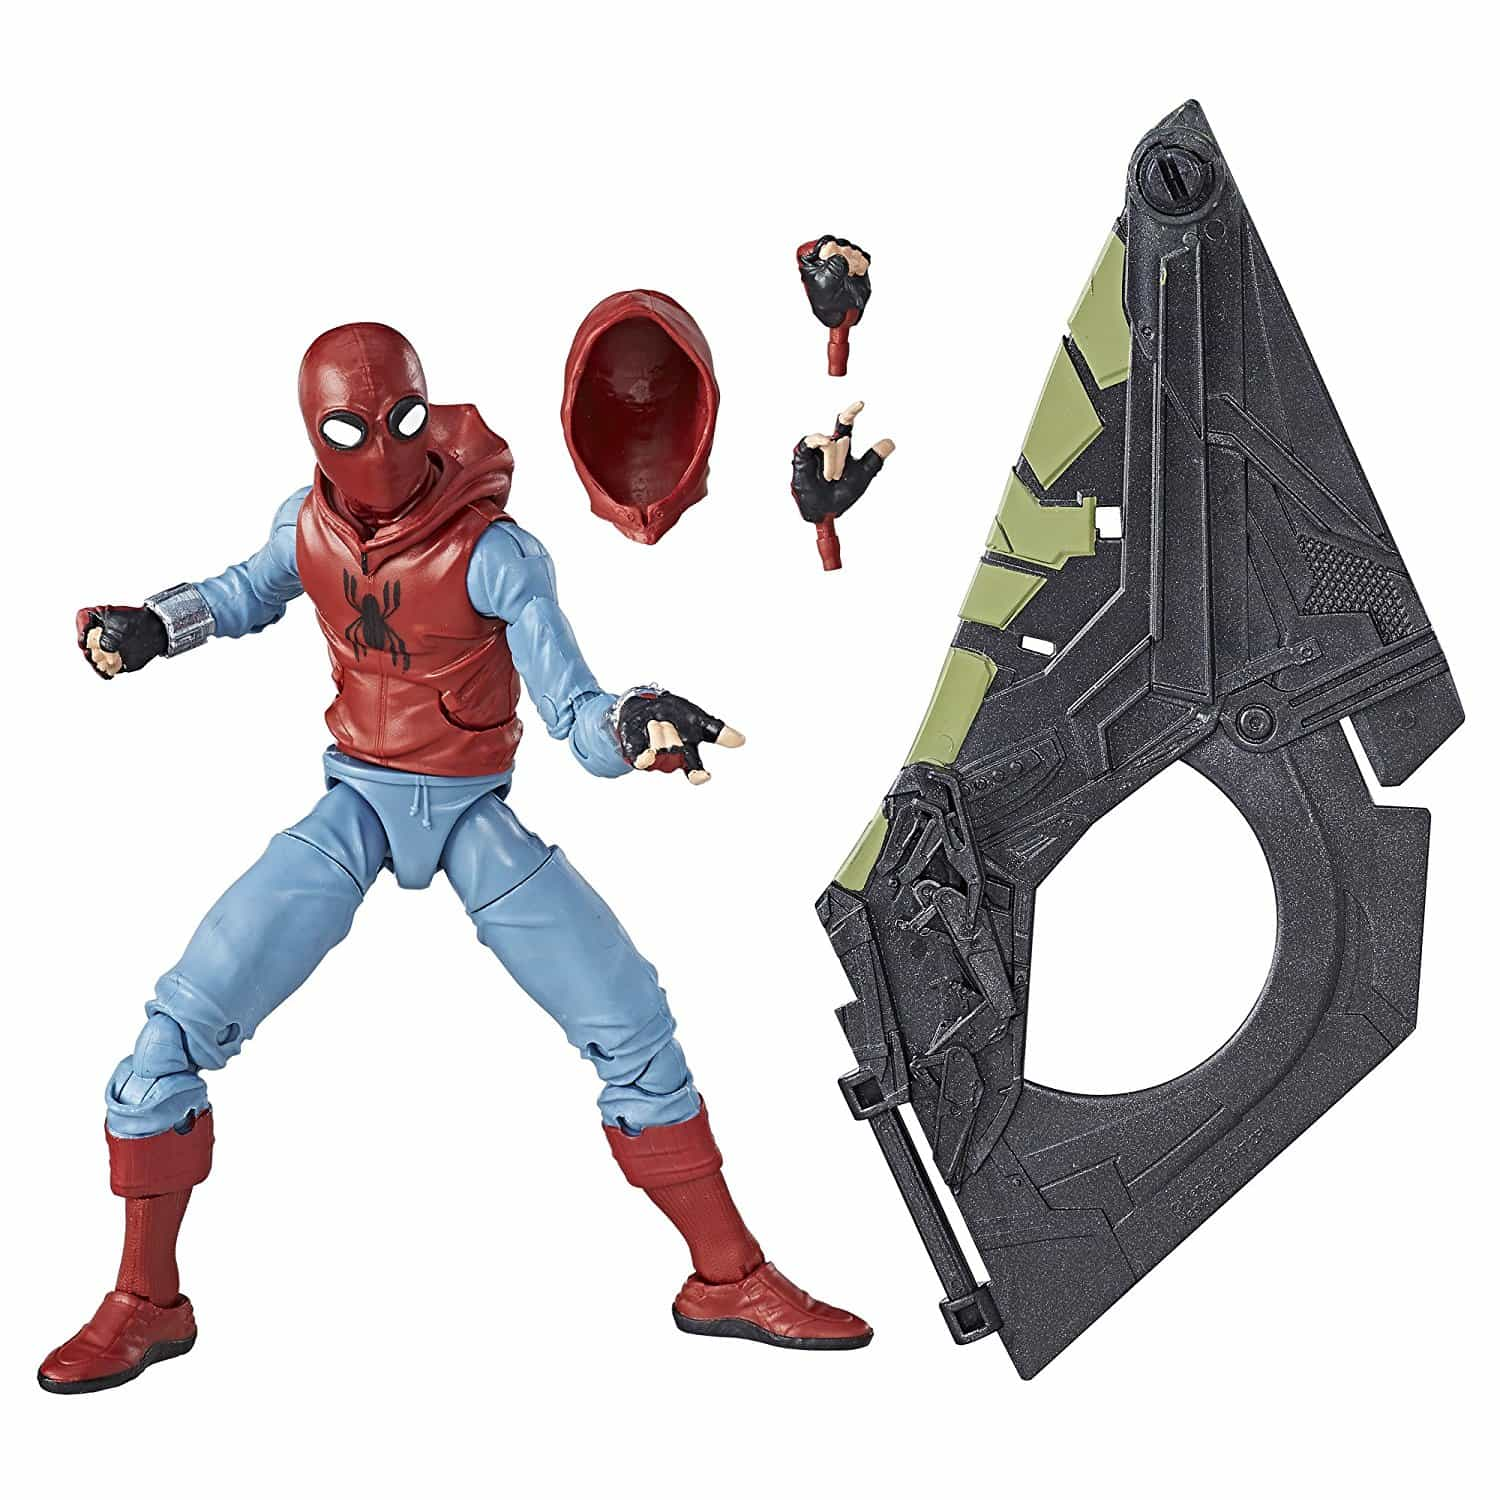 Marvel The Amazing Spider-Man 2 Legends Infinite Series Action Figure